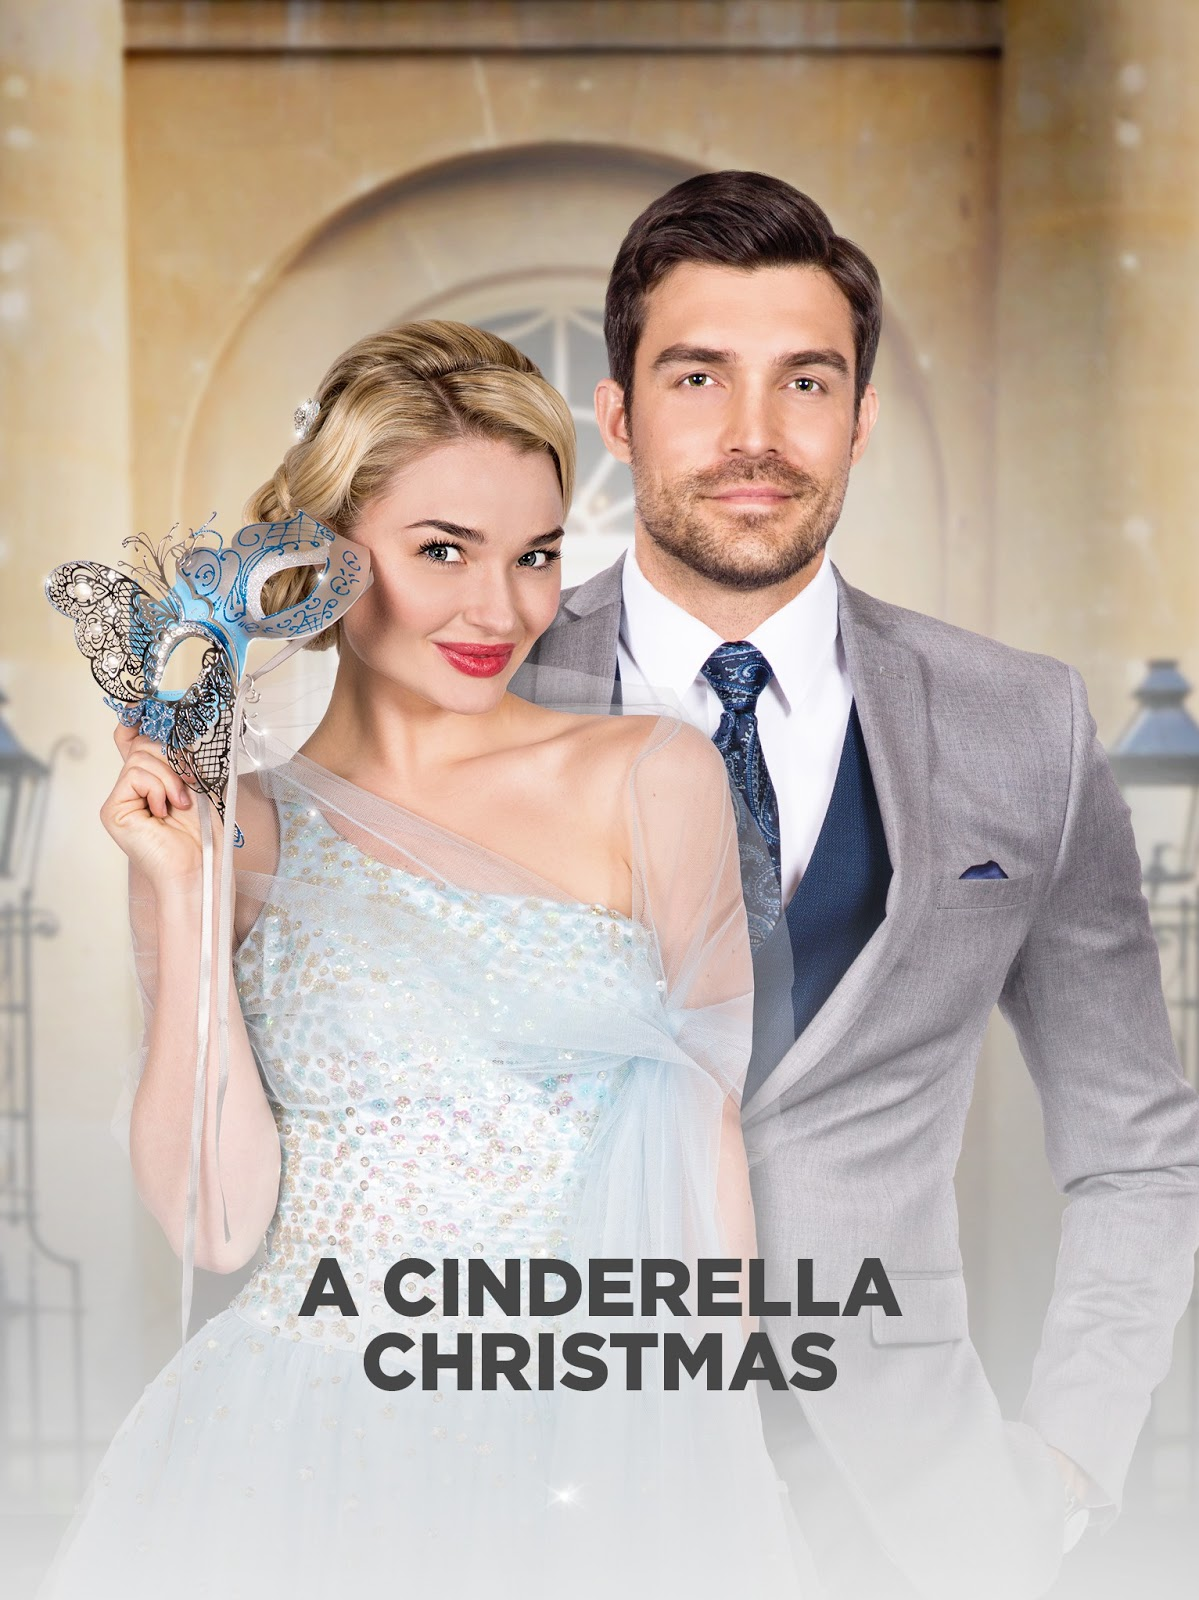 A Cinderella Christmas (TV Movie 2016)